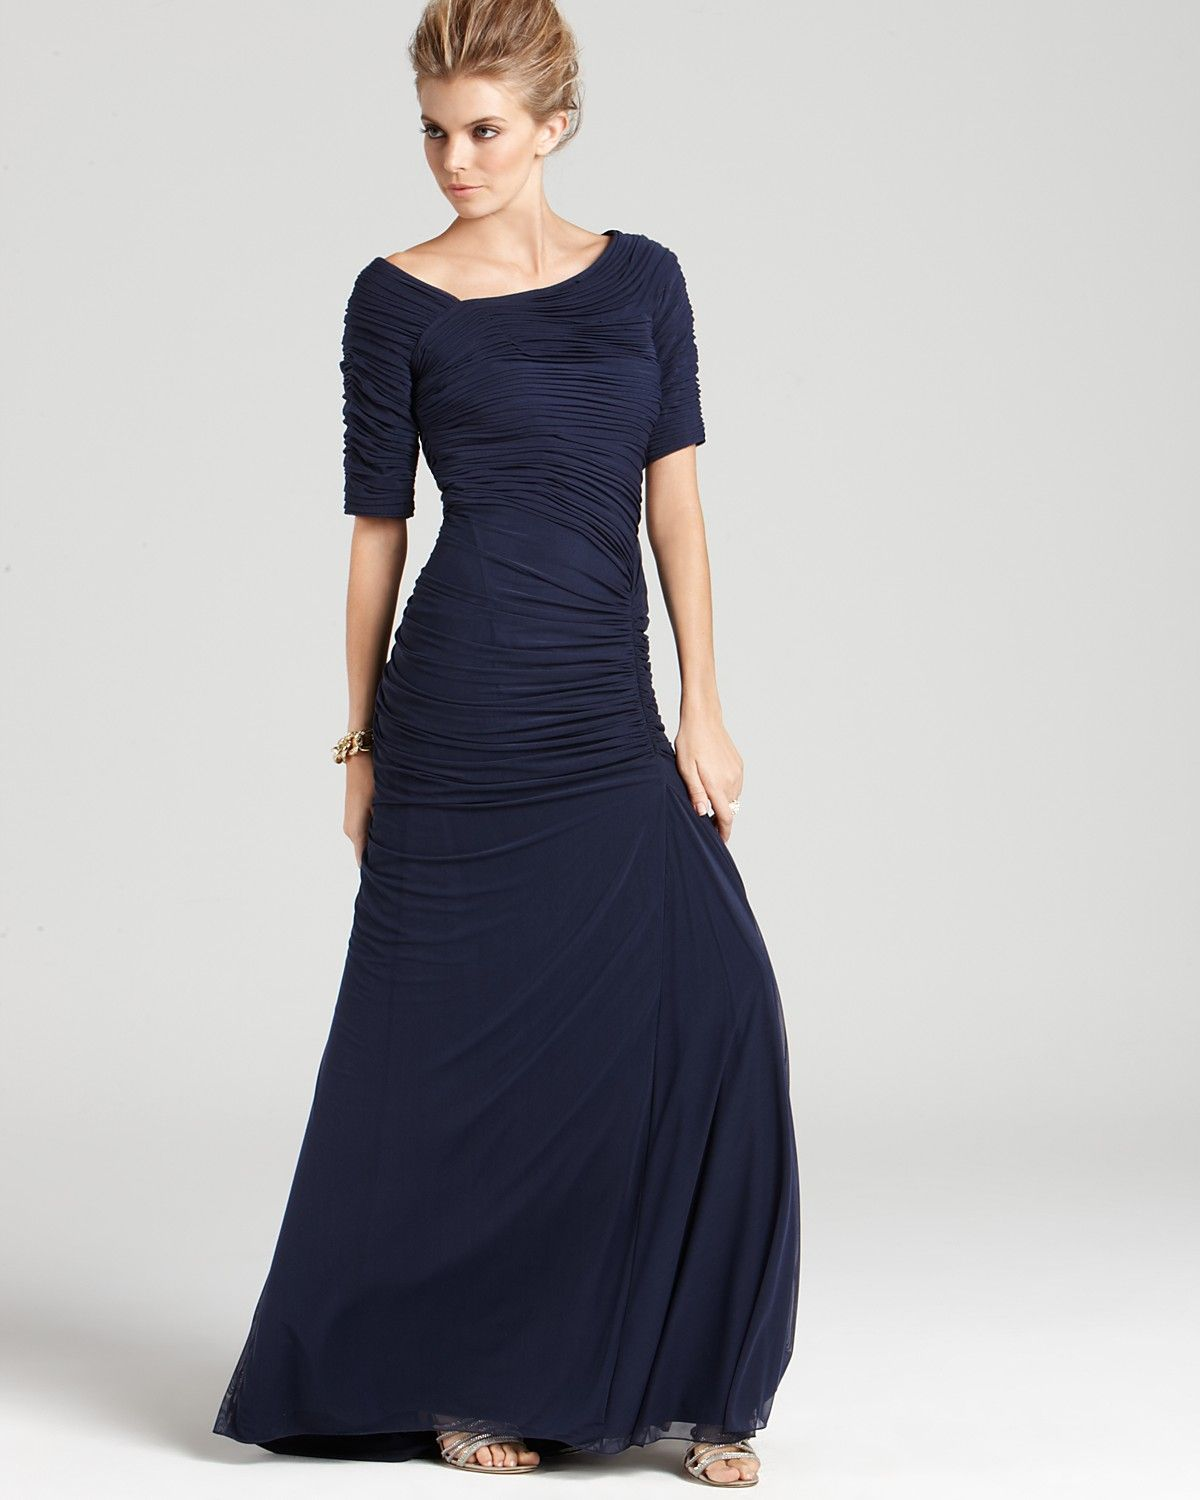 bloomingdale\'s+formal+evening+gowns | Tadashi Shoji Gown - Off-the ...